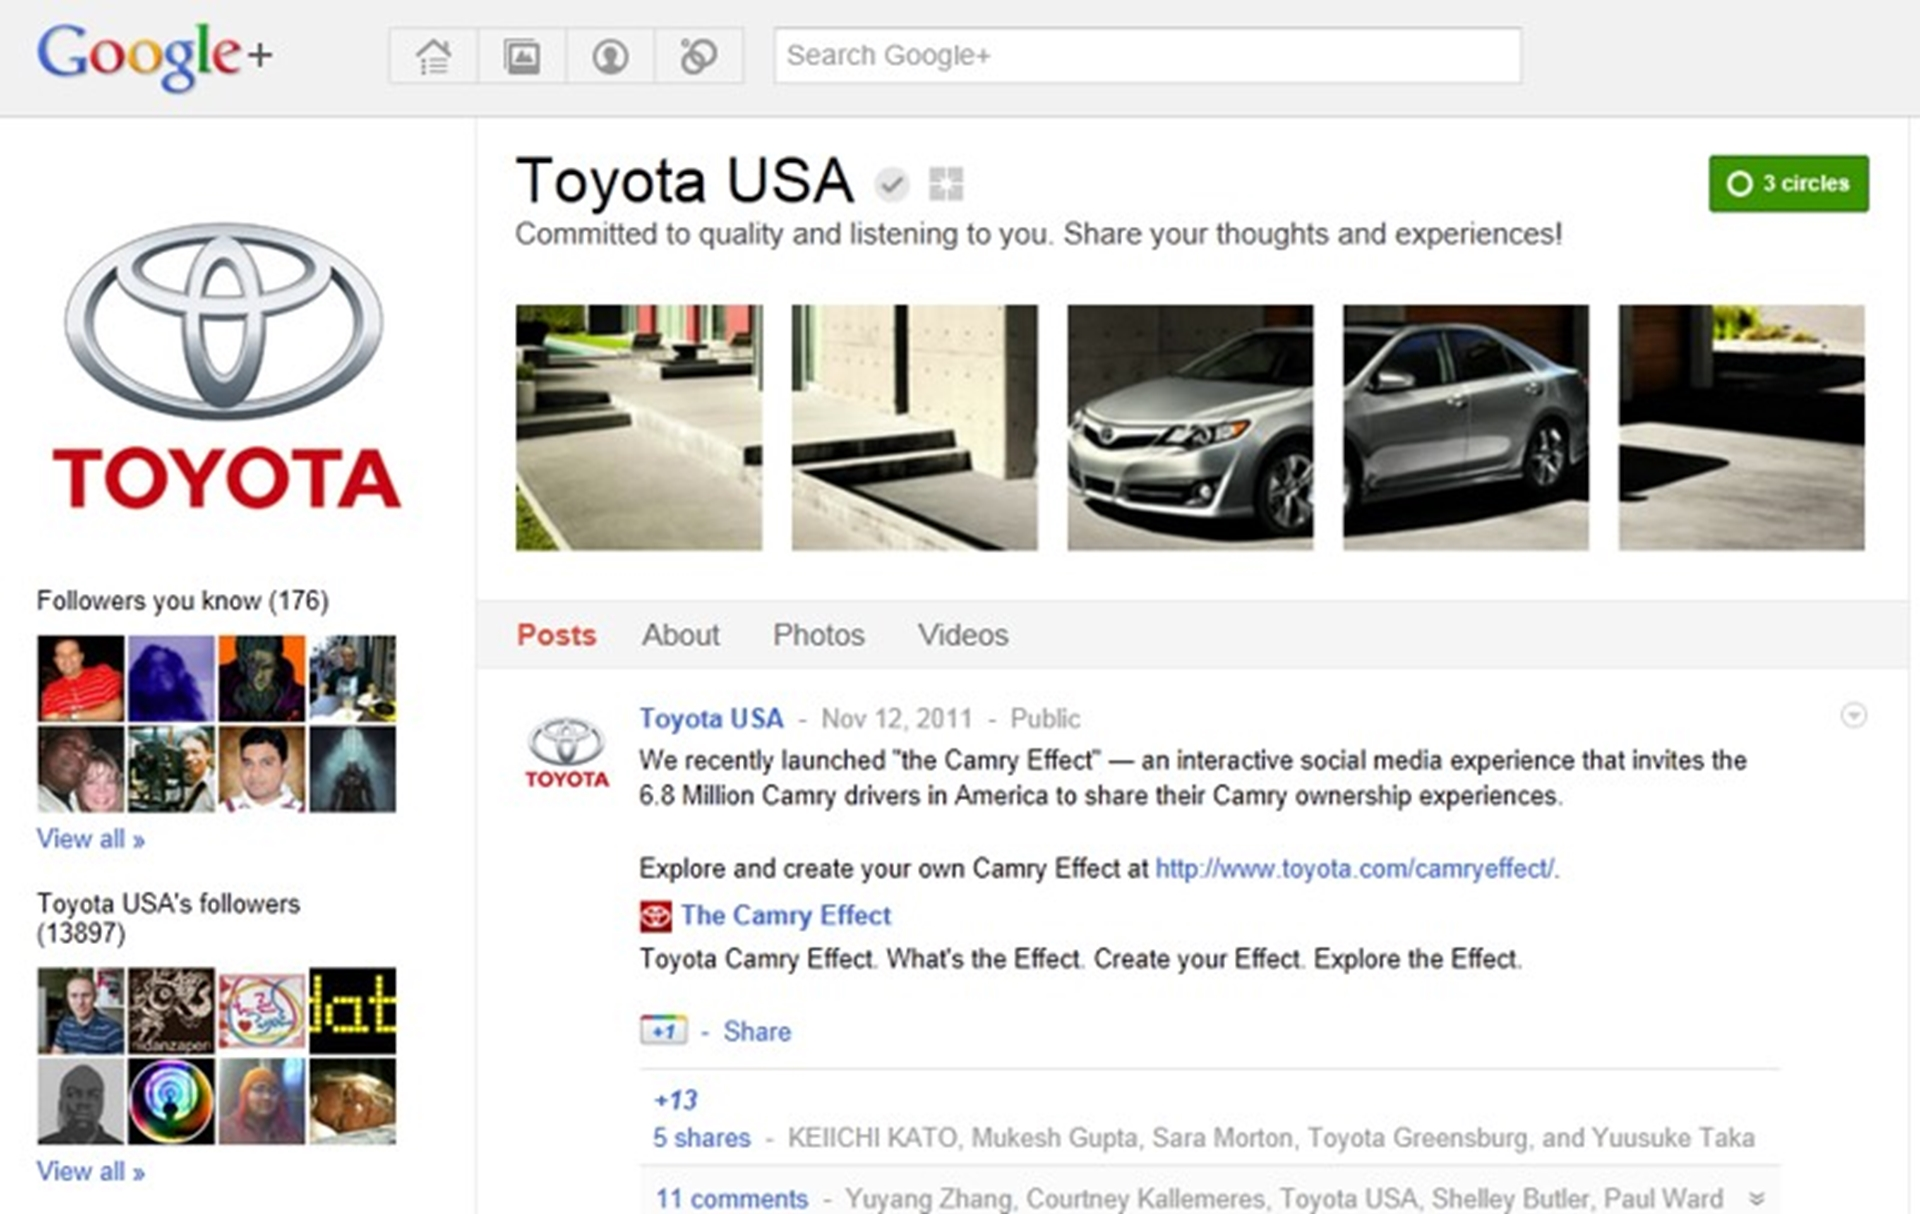 Toyota USA on Google Plus